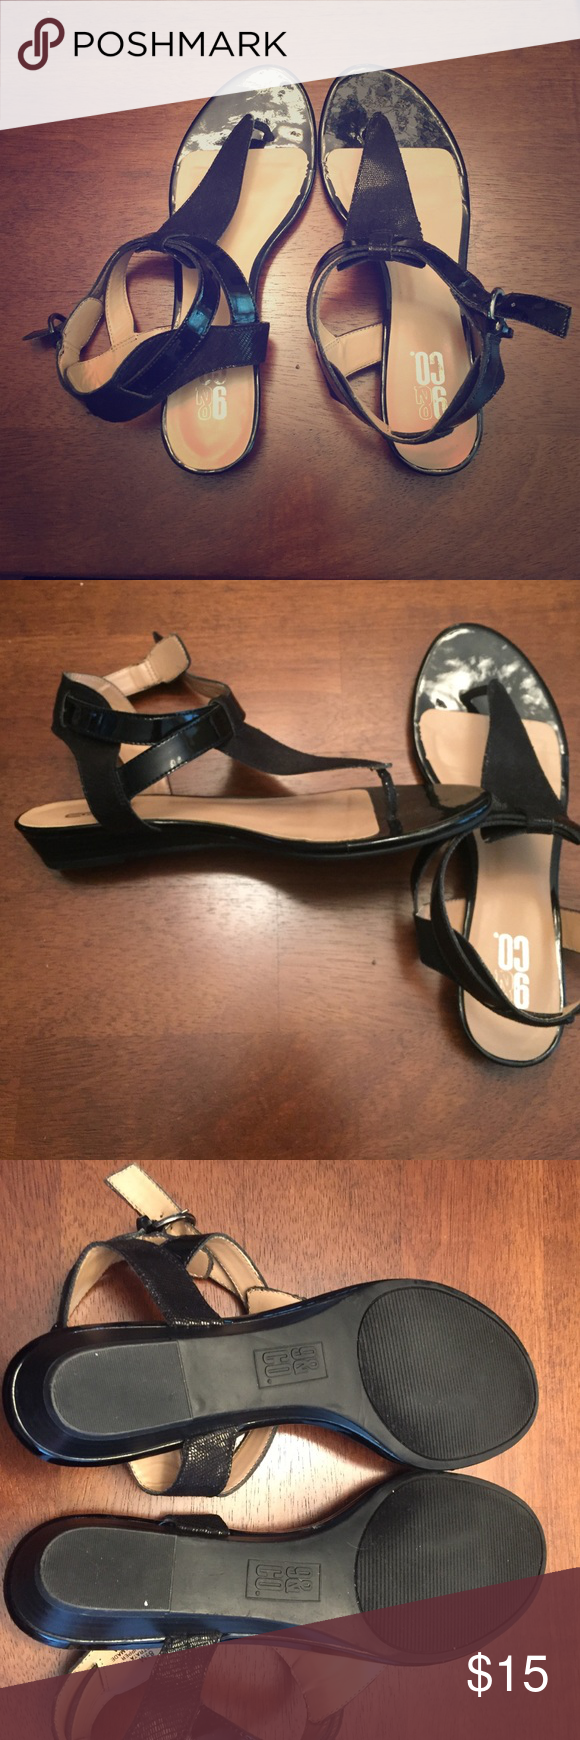 Wedge black sandals. Lower black wedge sandals. Can be dressed up or down. Only worn once, just like new condition. Very comfy if worn for a long day at work or out on the town. Apt. 9 Shoes Sandals